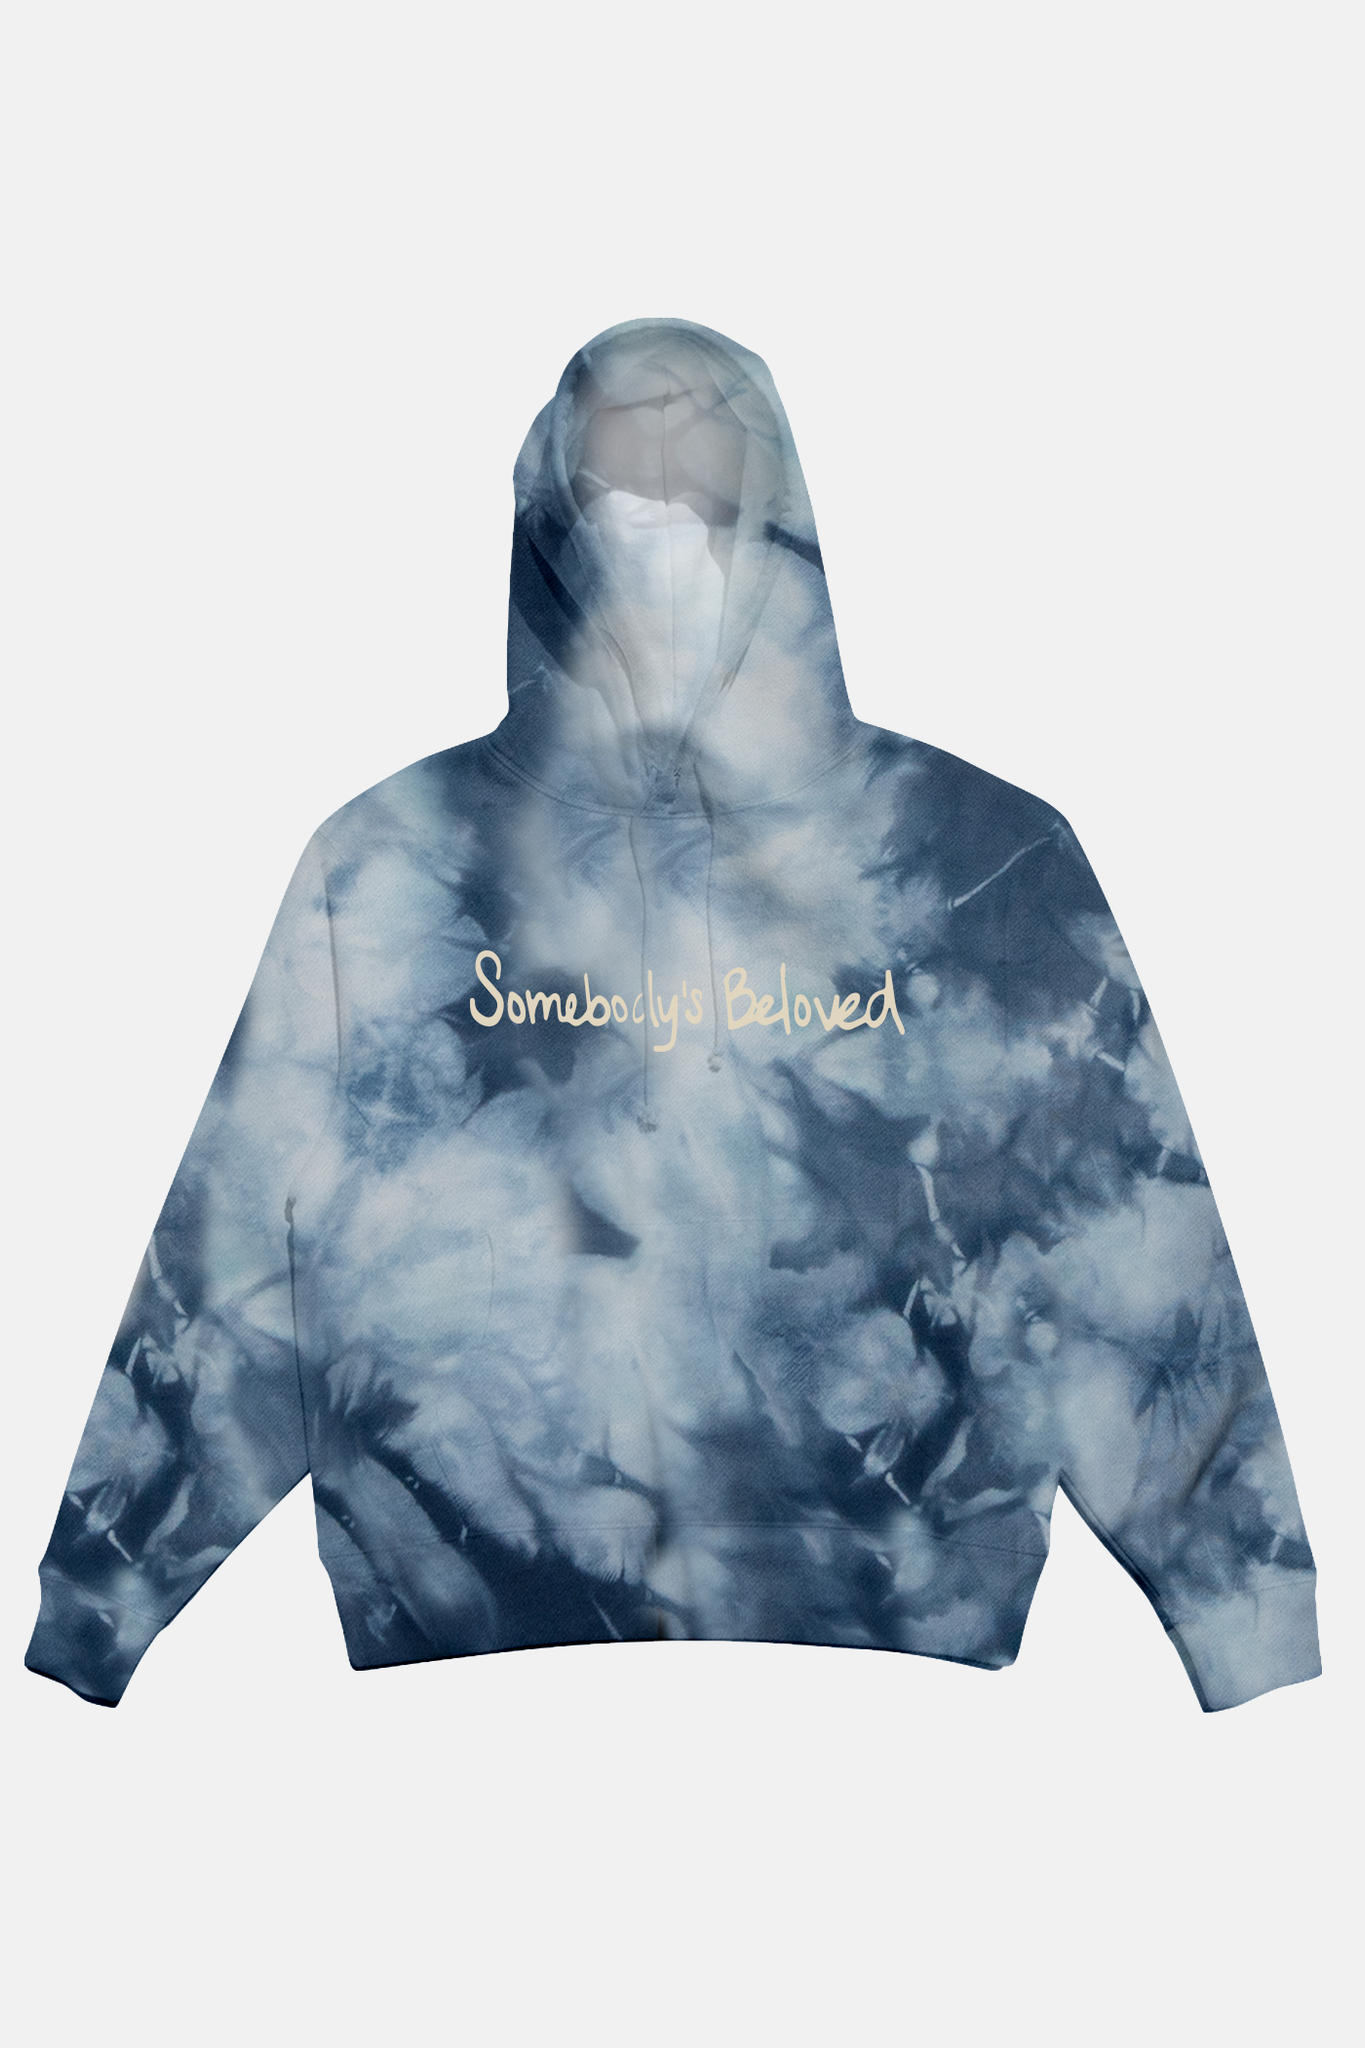 MILCK | Somebody's Beloved Tie Dye Hoodie